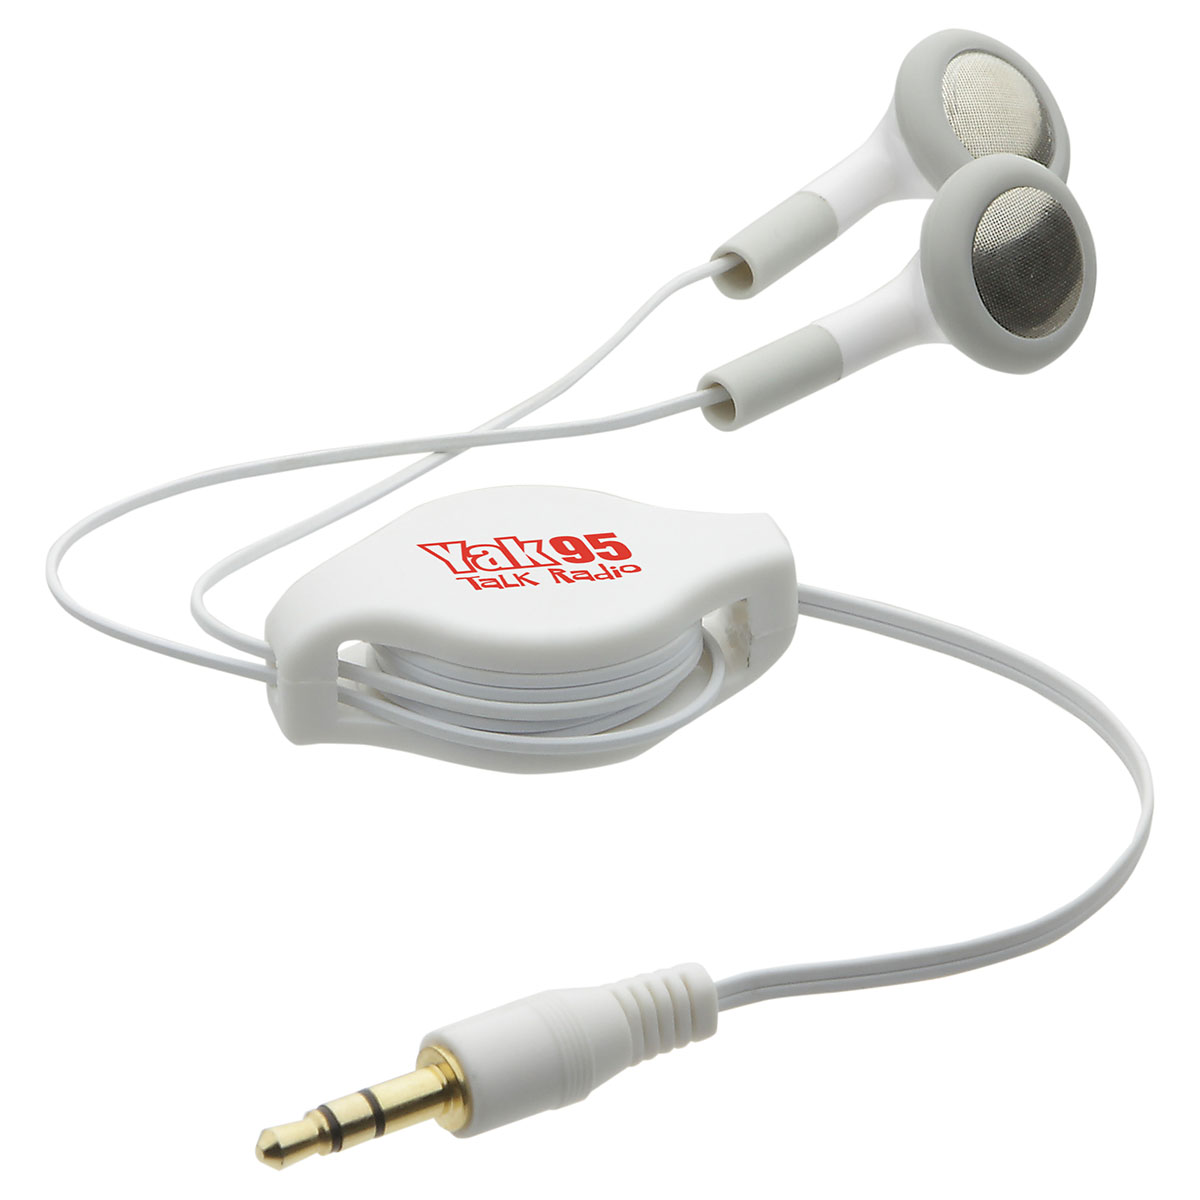 Auto Recoil Earbuds, WTV-AR13, 1 Colour Imprint